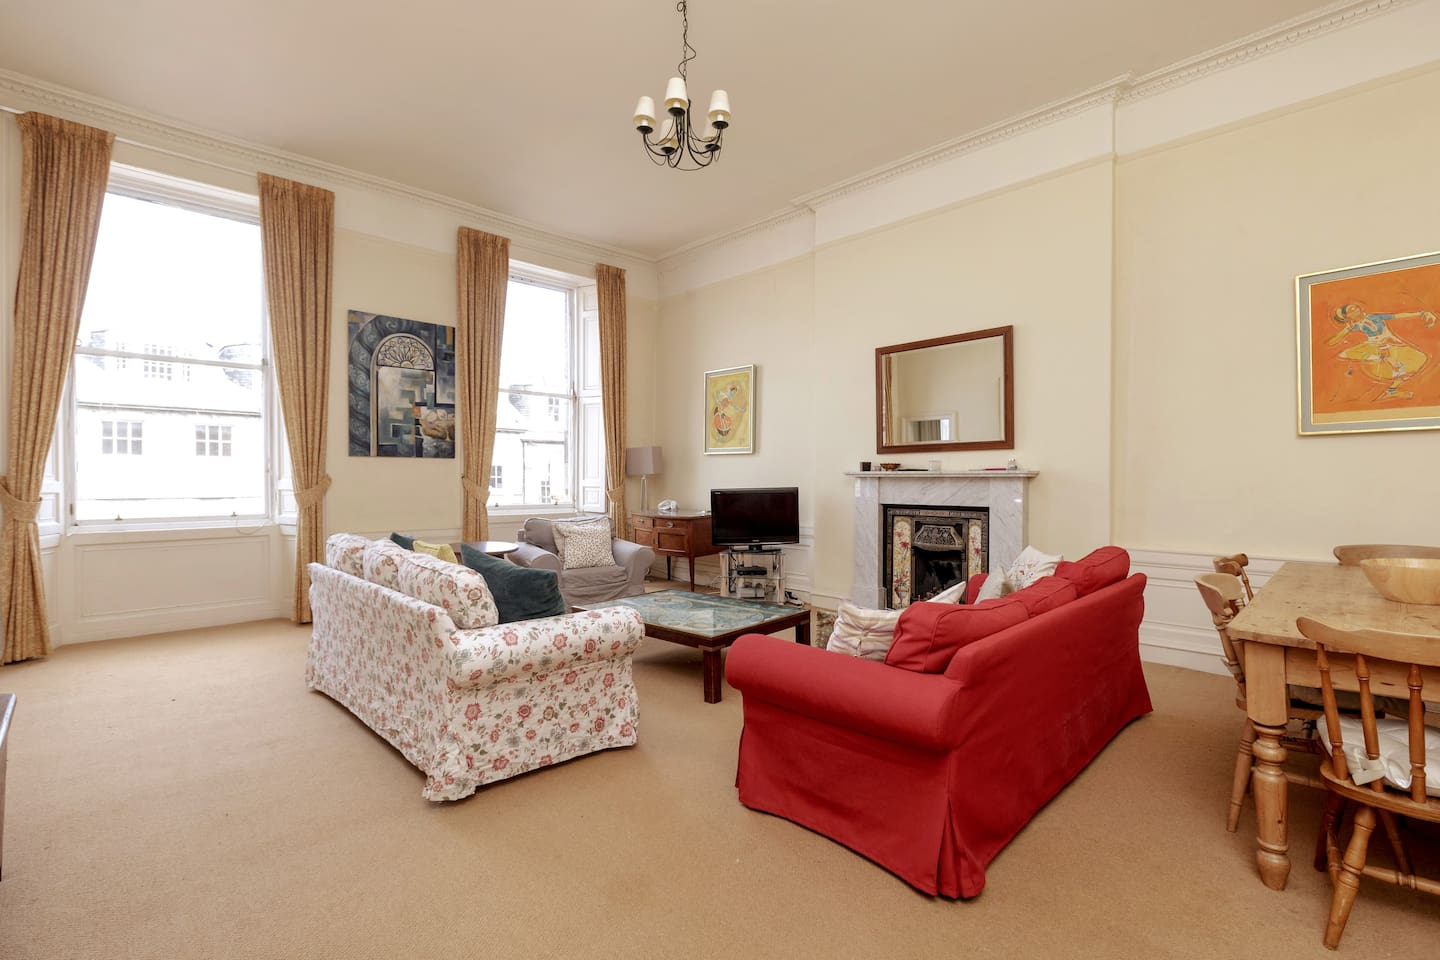 Homely furnishing